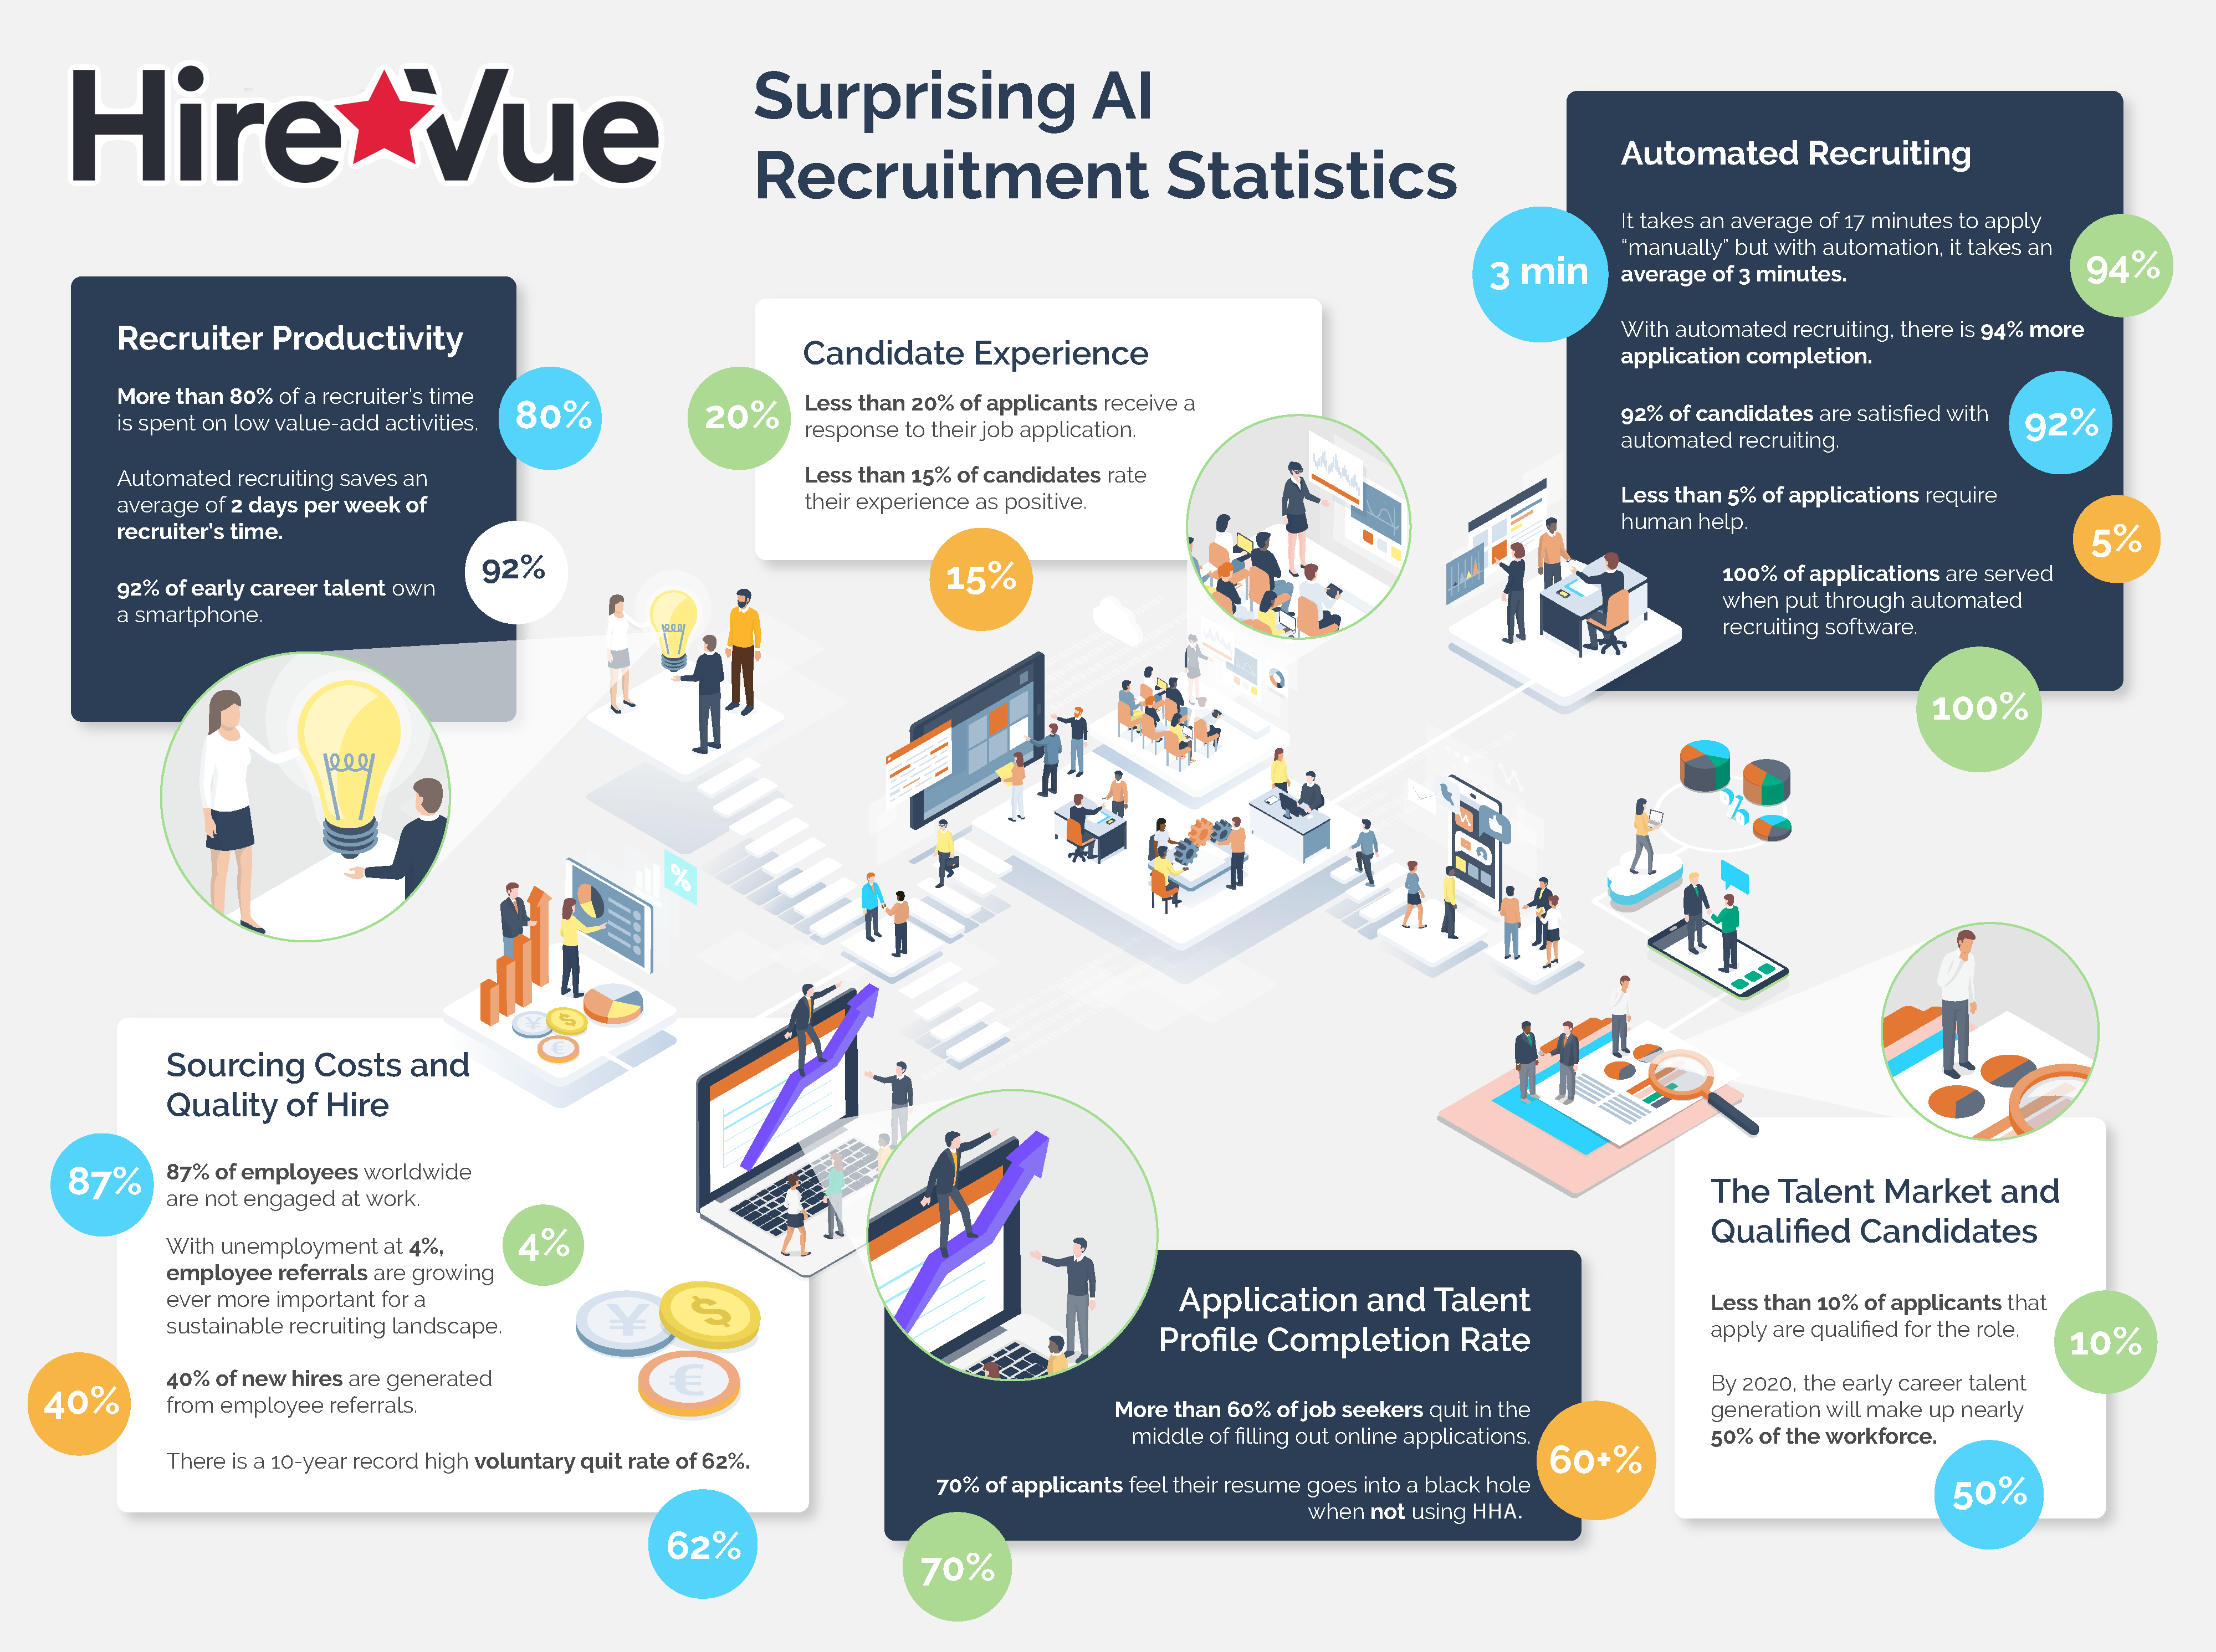 HireVue Hiring Assistant Surprising AI Recruitment Statistics Infographic